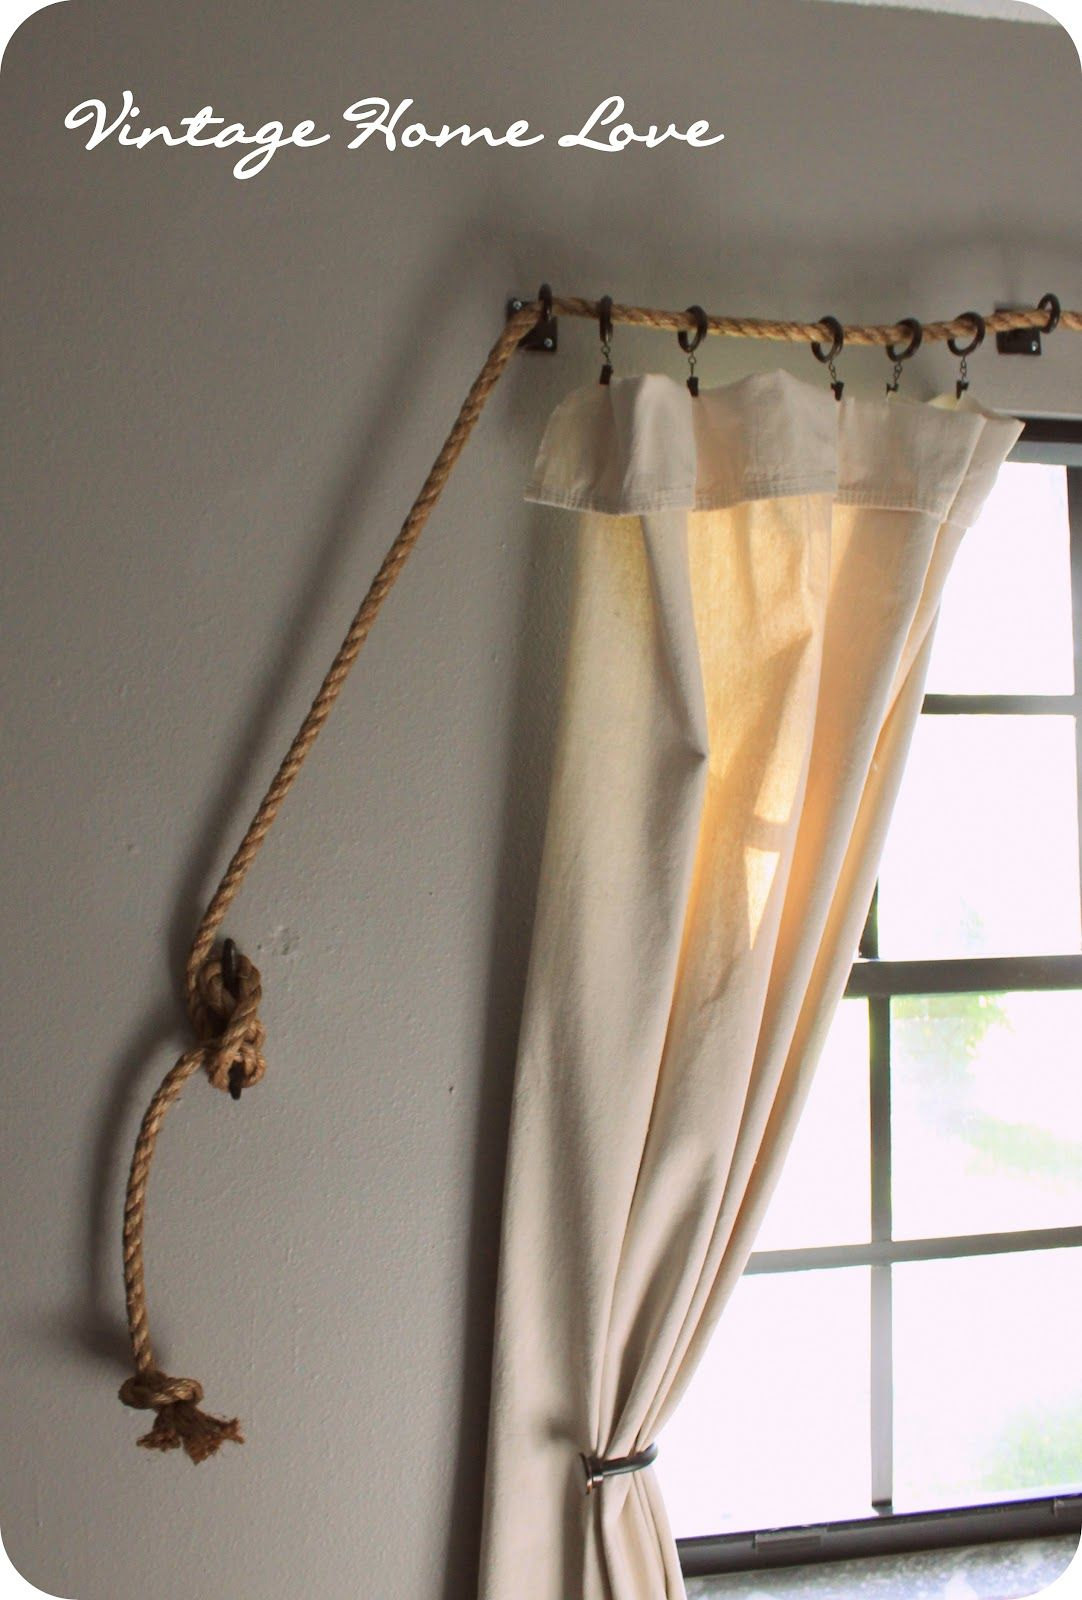 vintage home love rope curtain rod